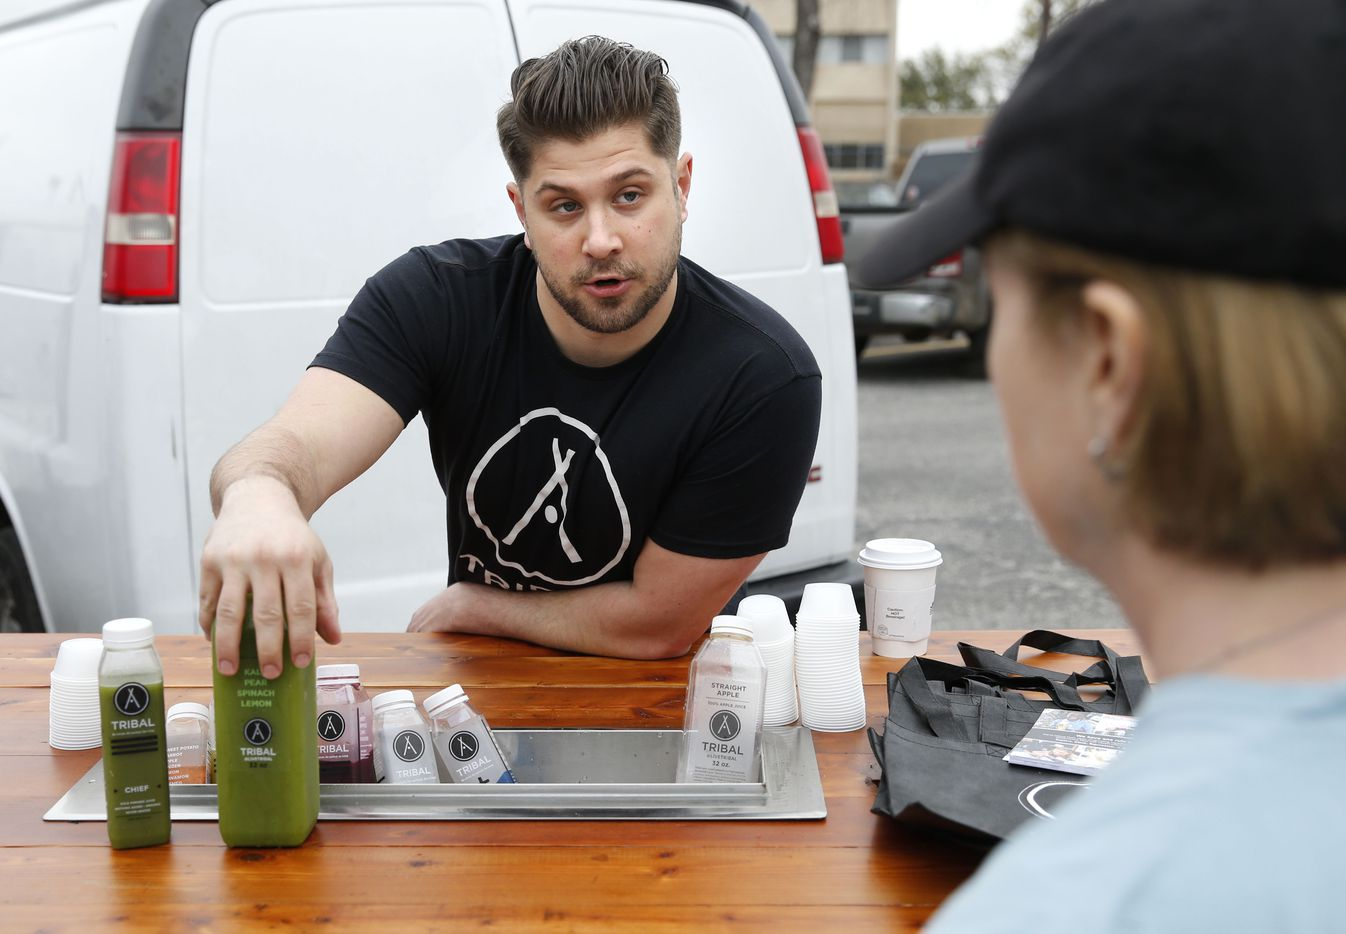 Tribal's Brenton Phillips of Dallas explains the different types of juices they carry to Terry Moomaw of Dallas during opening day for the Tyler Street Market run by Good Local in Dallas on Saturday, March 18, 2017.